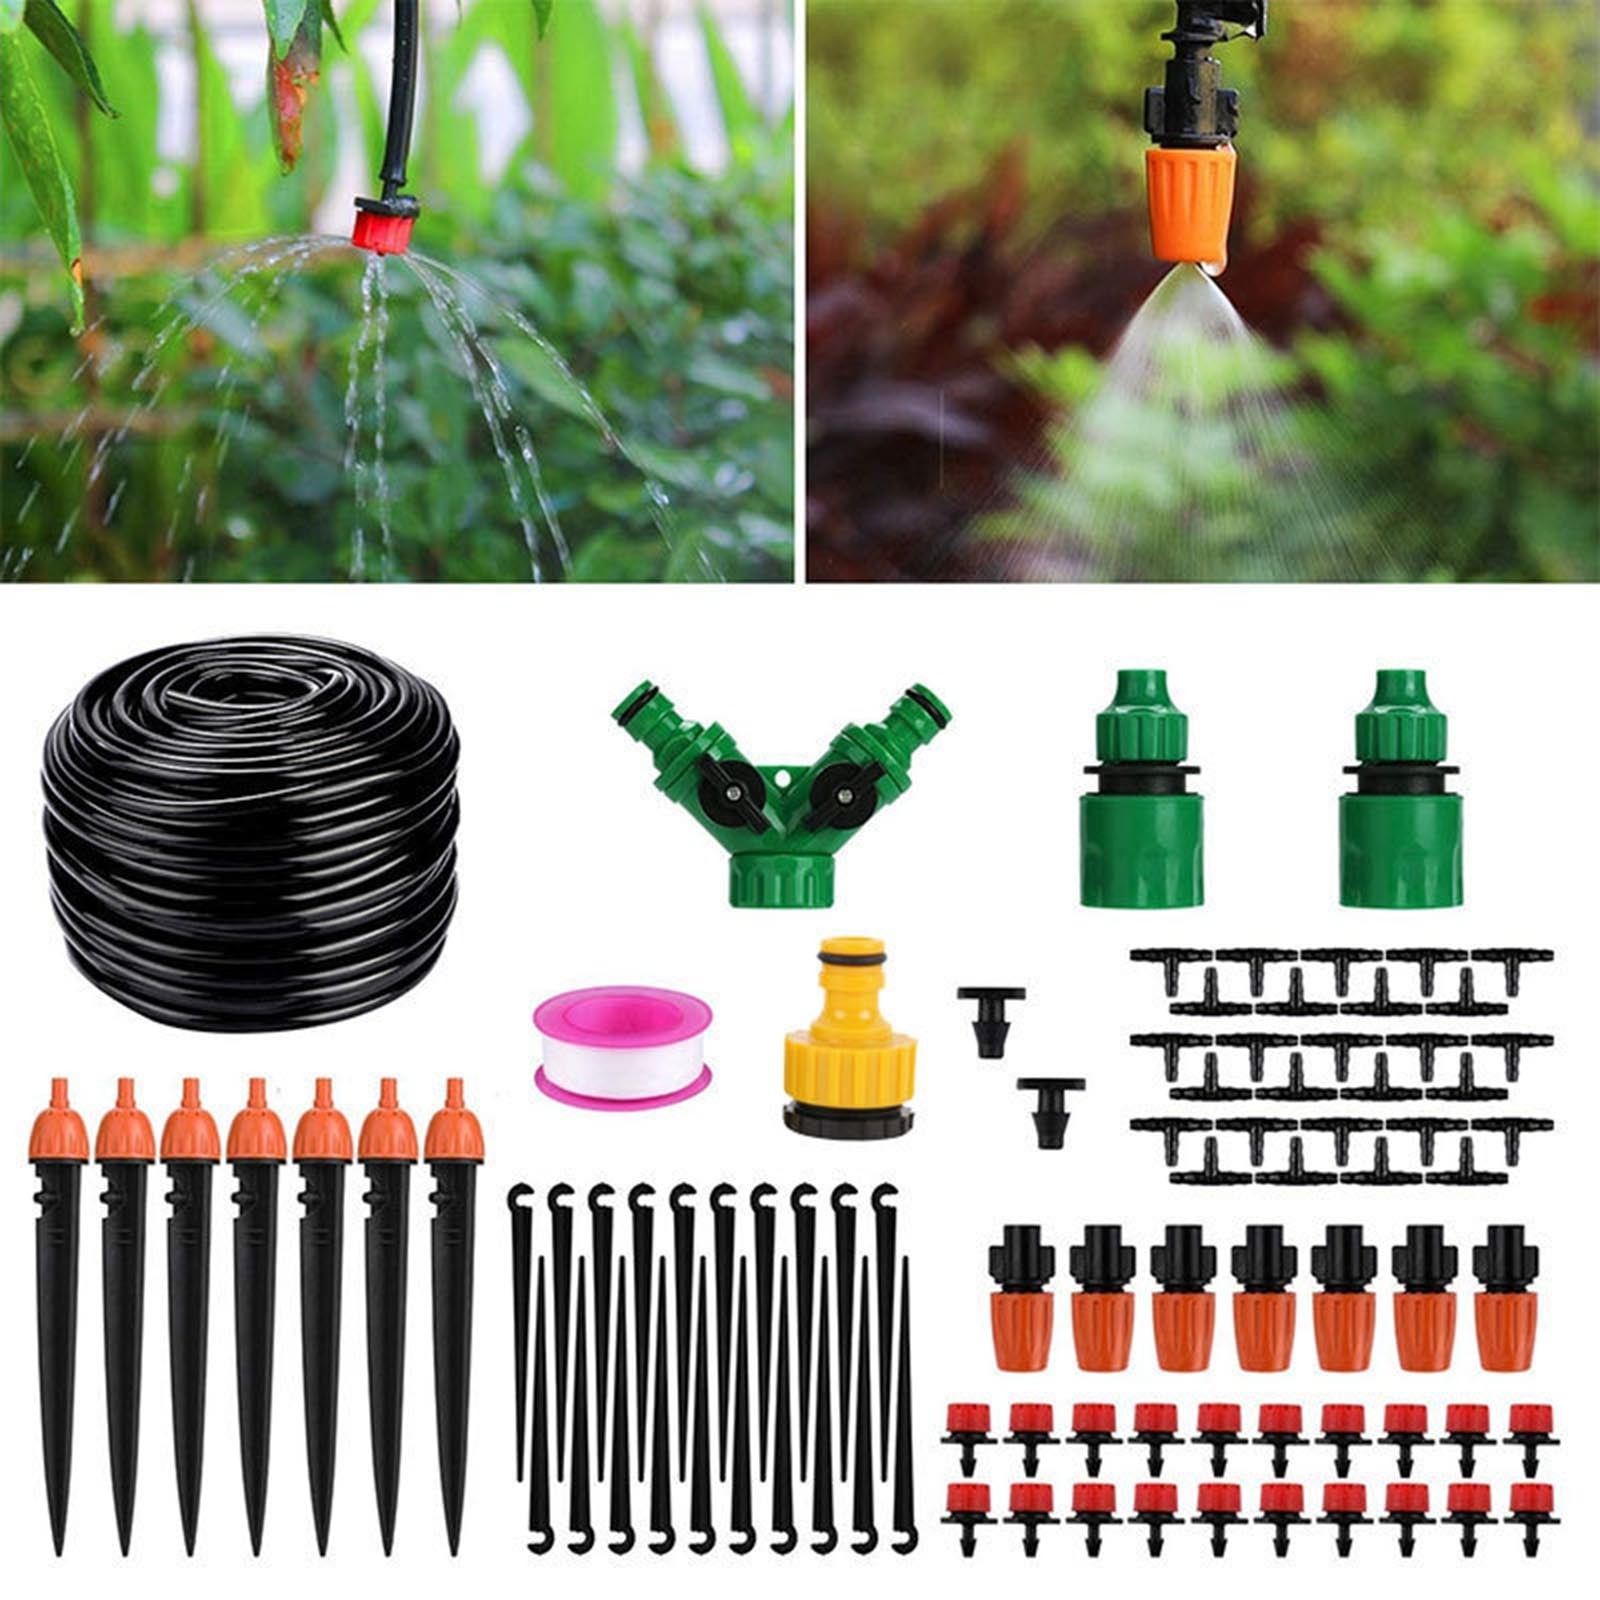 Automatic Drip Irrigation Tool Spikes Automatic Flower Plant Garden Watering System Kit Adjustable Water Self-watering Device#T3